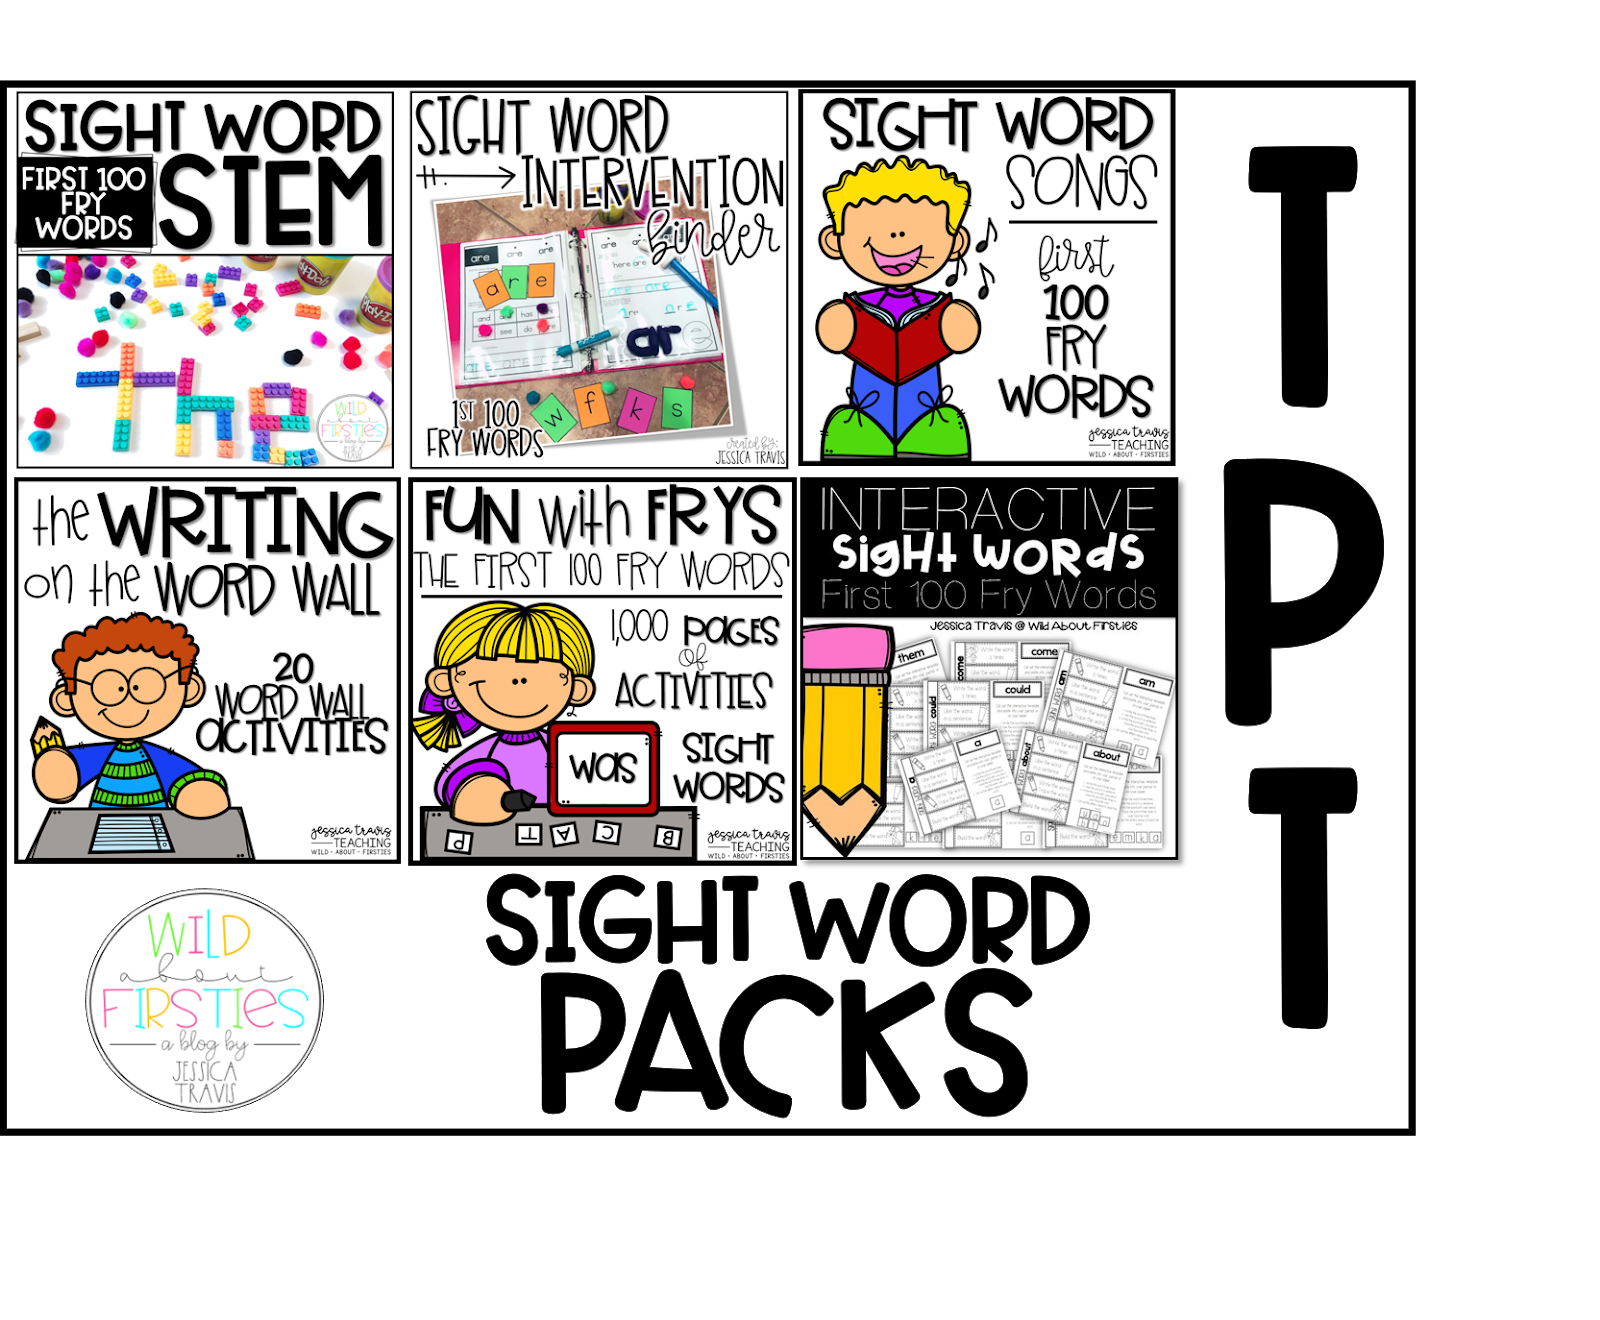 All About SIGHT WORDS!